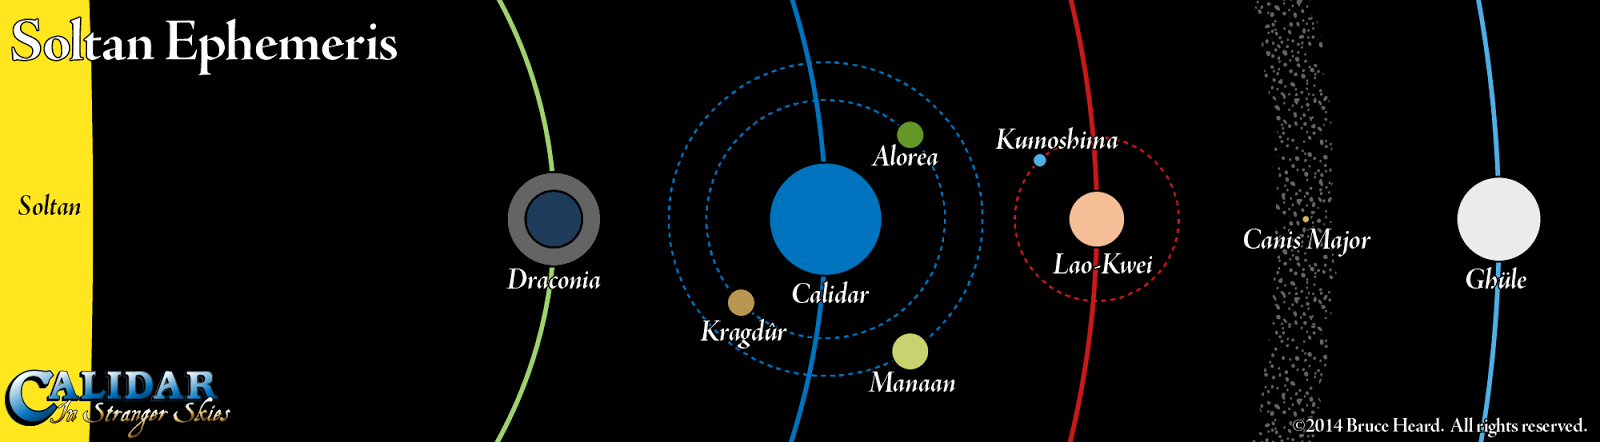 Soltan Ephemeris triple-scaled diagram, showing orbital distances, relative planet sizes, and moon orbits of Calidar and its neighbours.